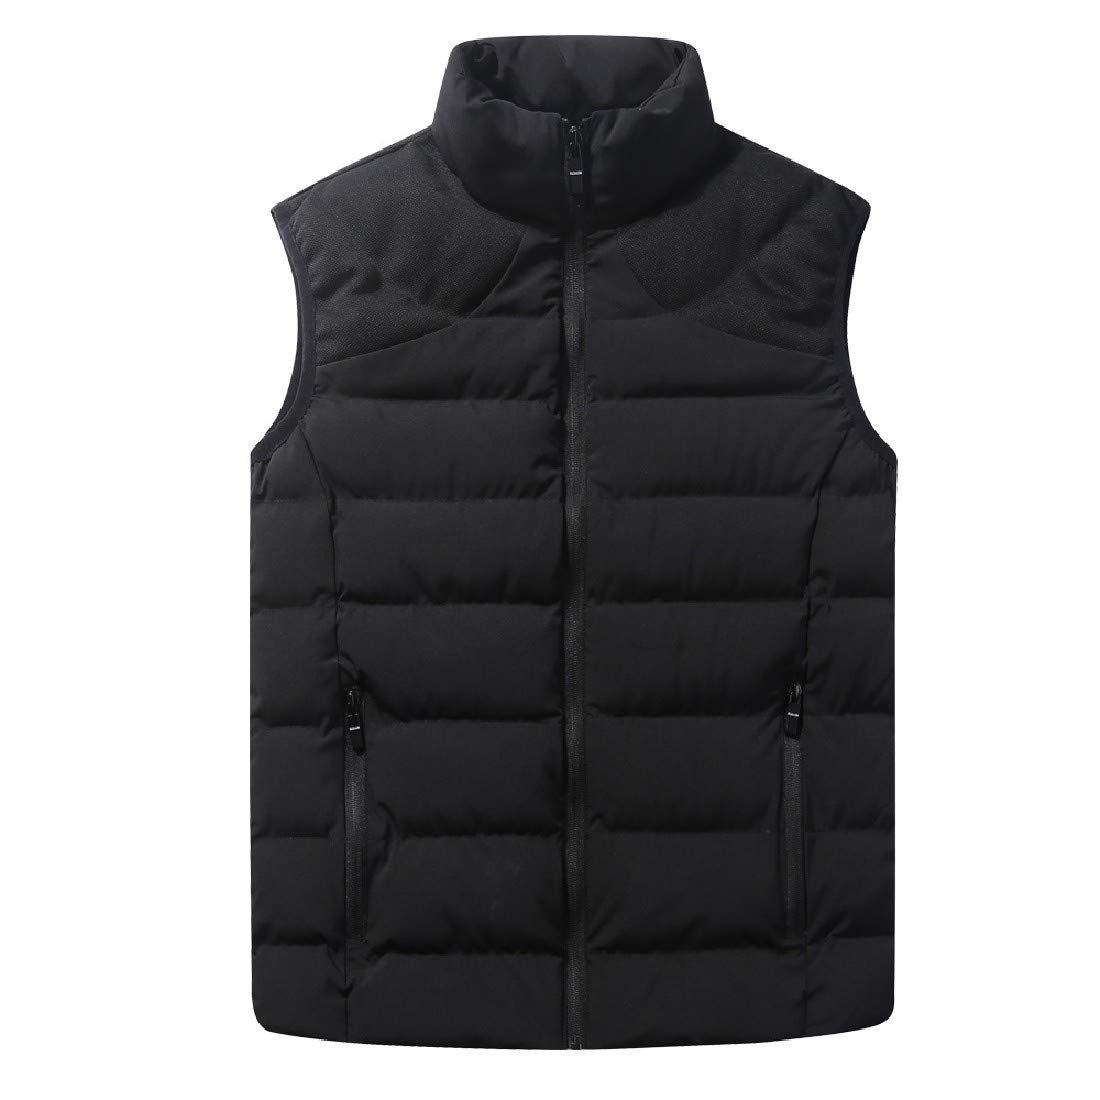 YUNY Mens Corduroy Stand Collar Sleeveless Solid-Colored Puffy Vest